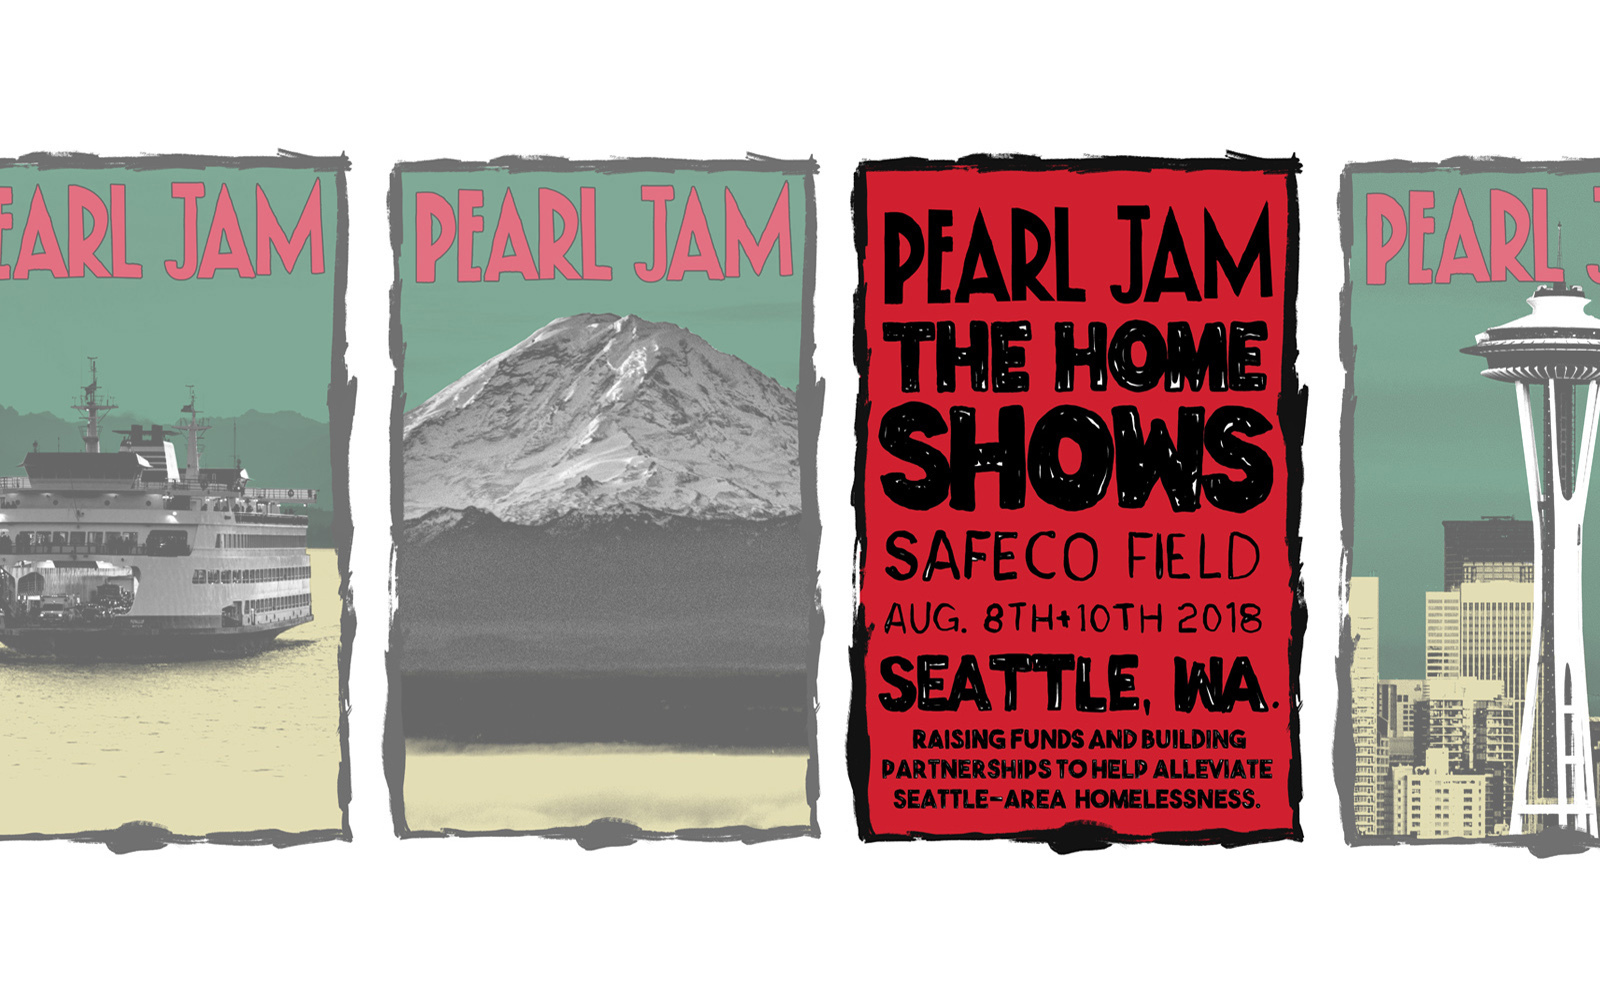 Pearl Jam Announces The Home Shows!